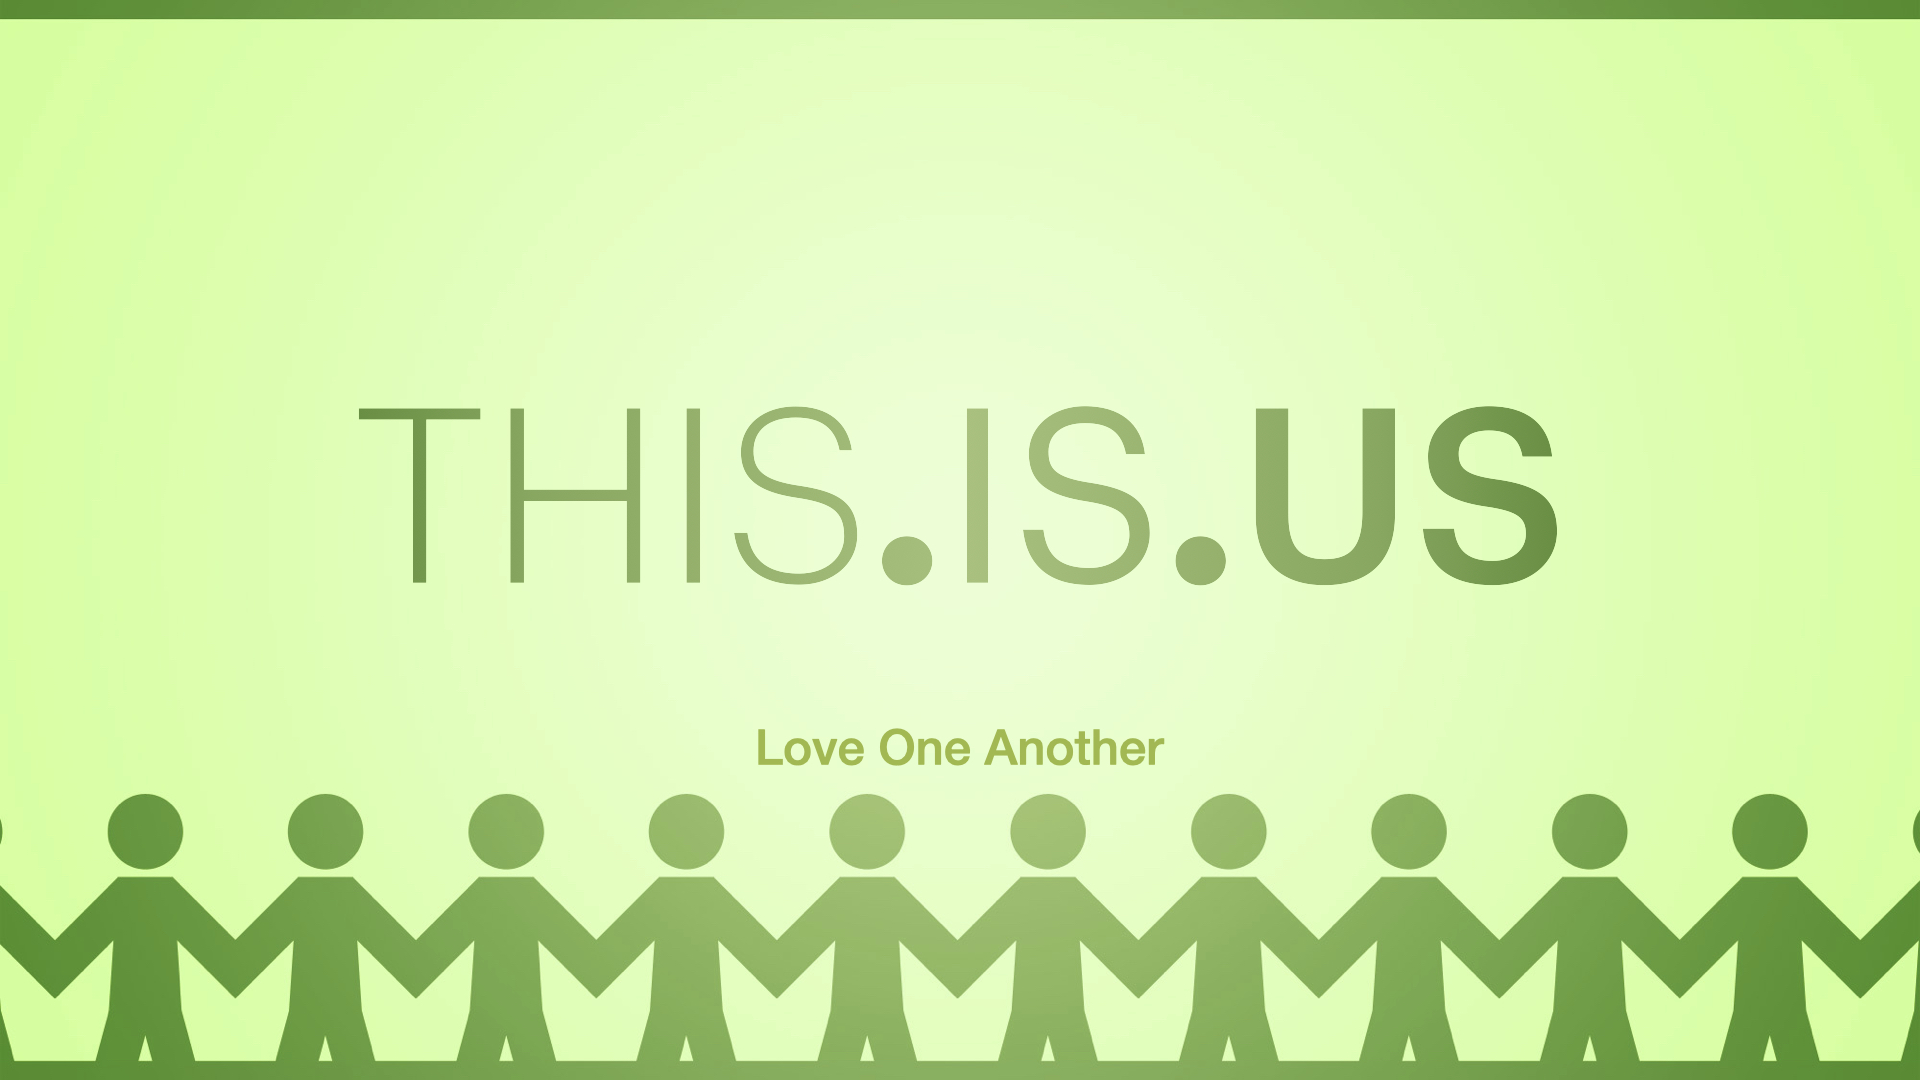 THISISUS  Love One Another